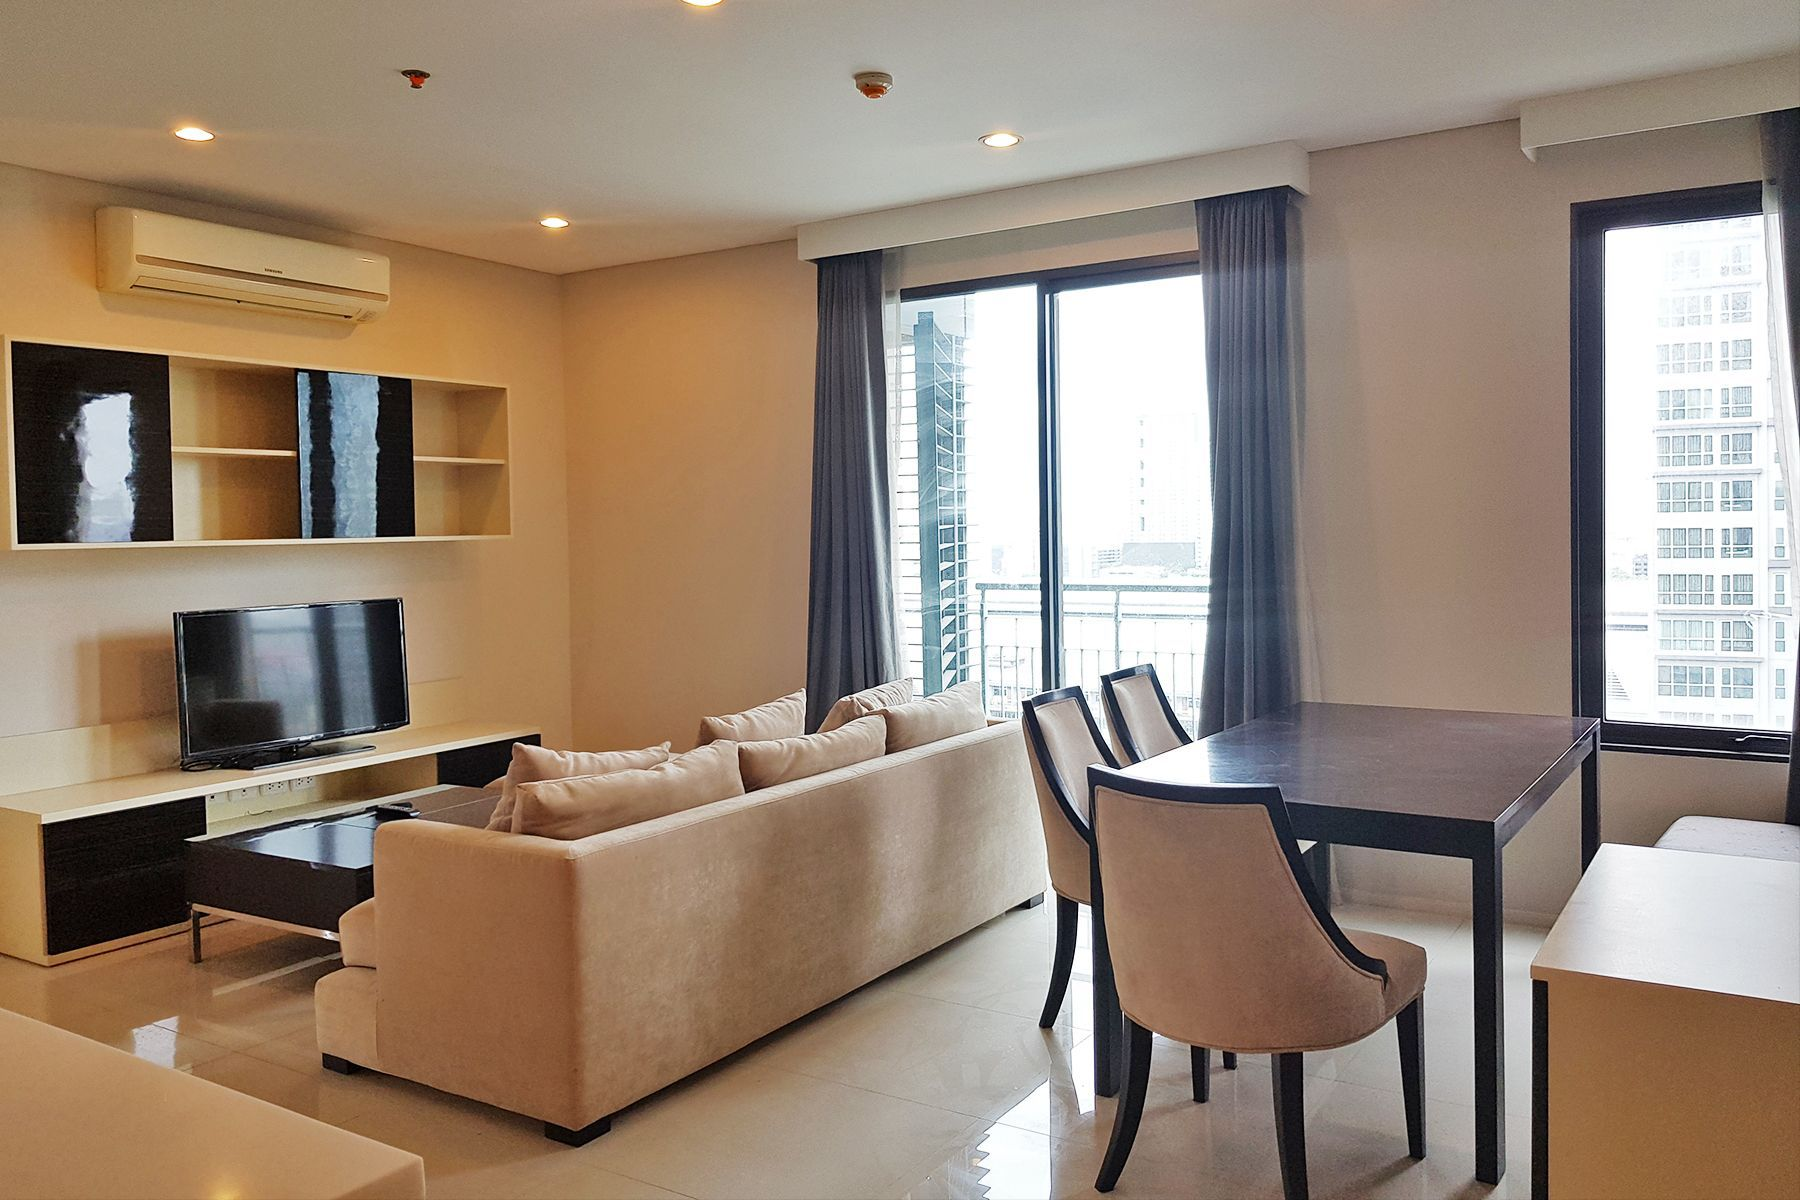 List Sotheby's International Realty Thailand | Sell Buy Rent